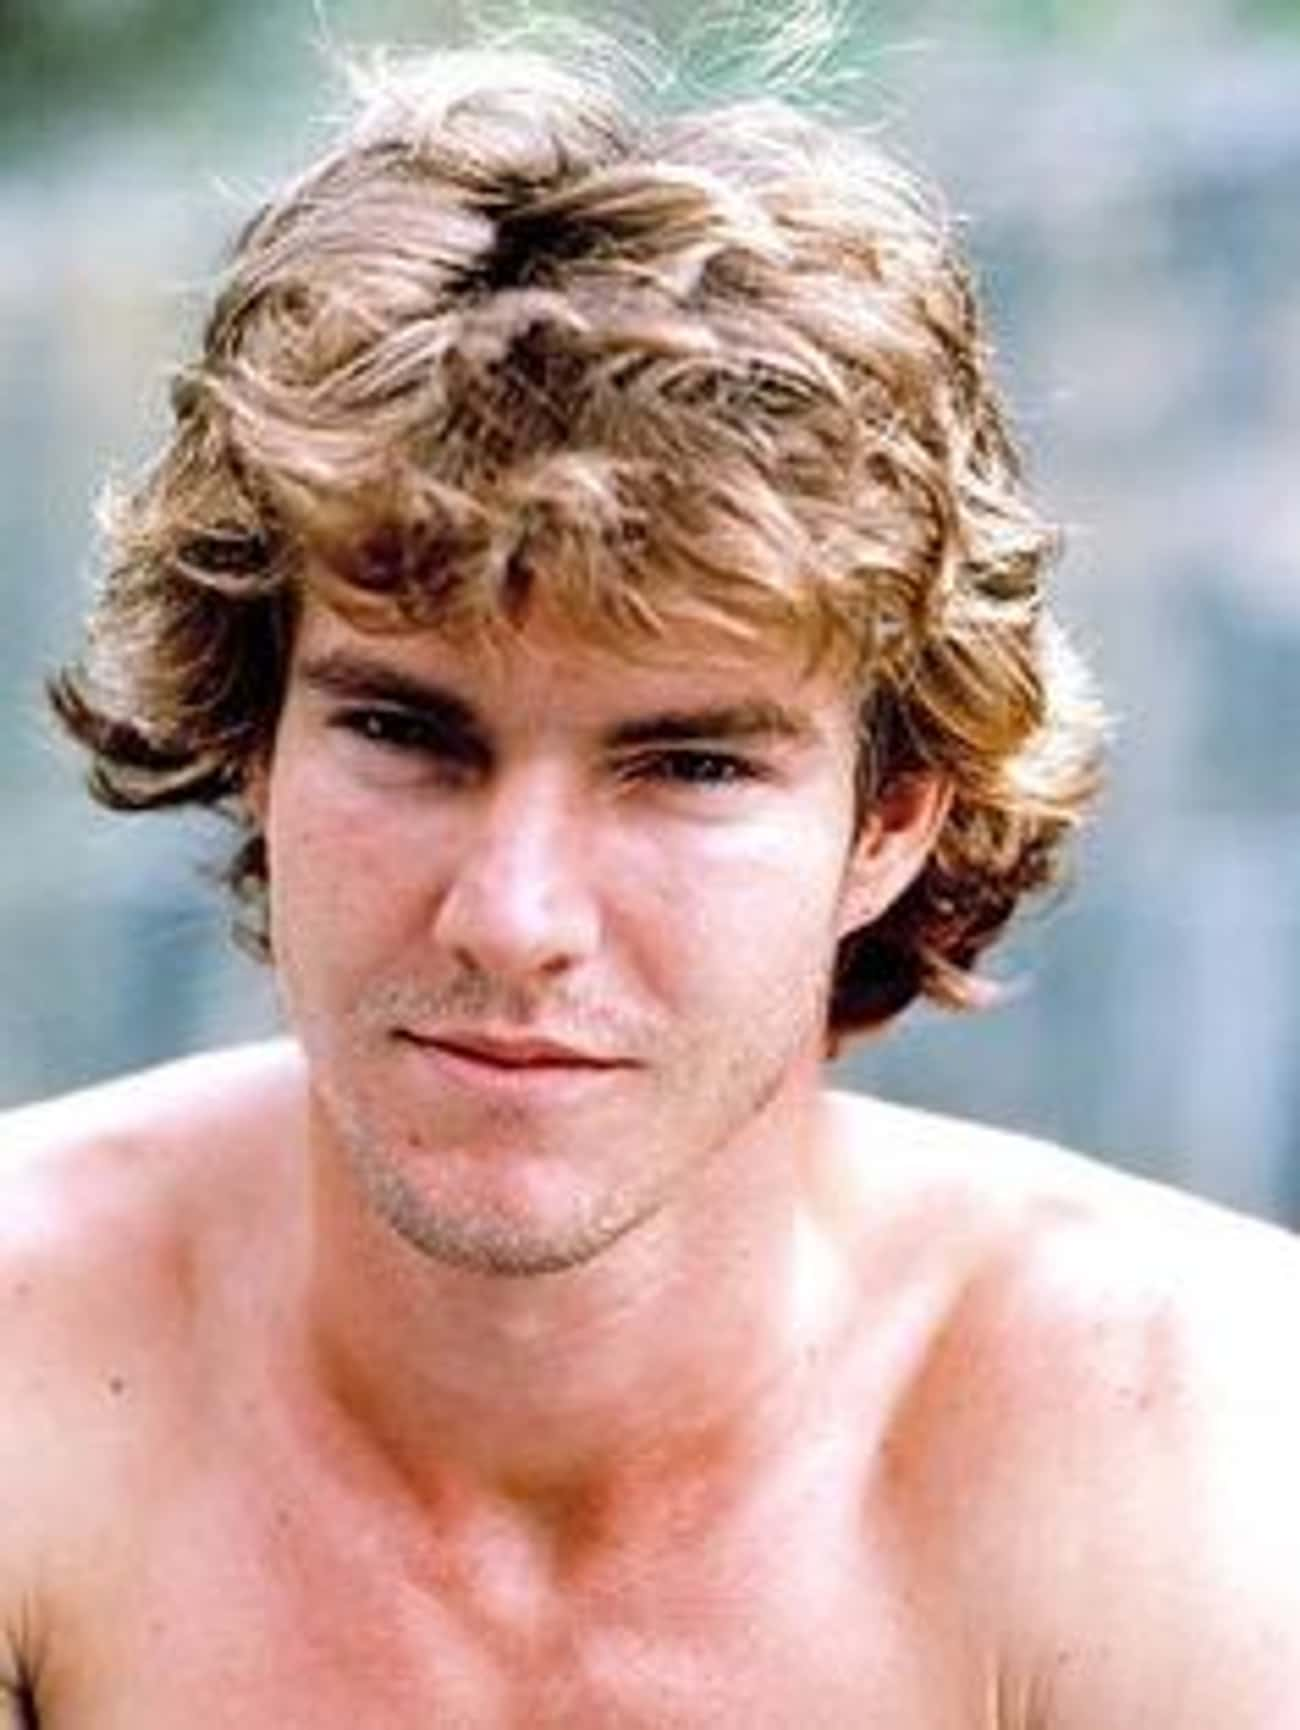 Young Dennis Quaid Shirtless is listed (or ranked) 3 on the list 20 Pictures of Young Dennis Quaid